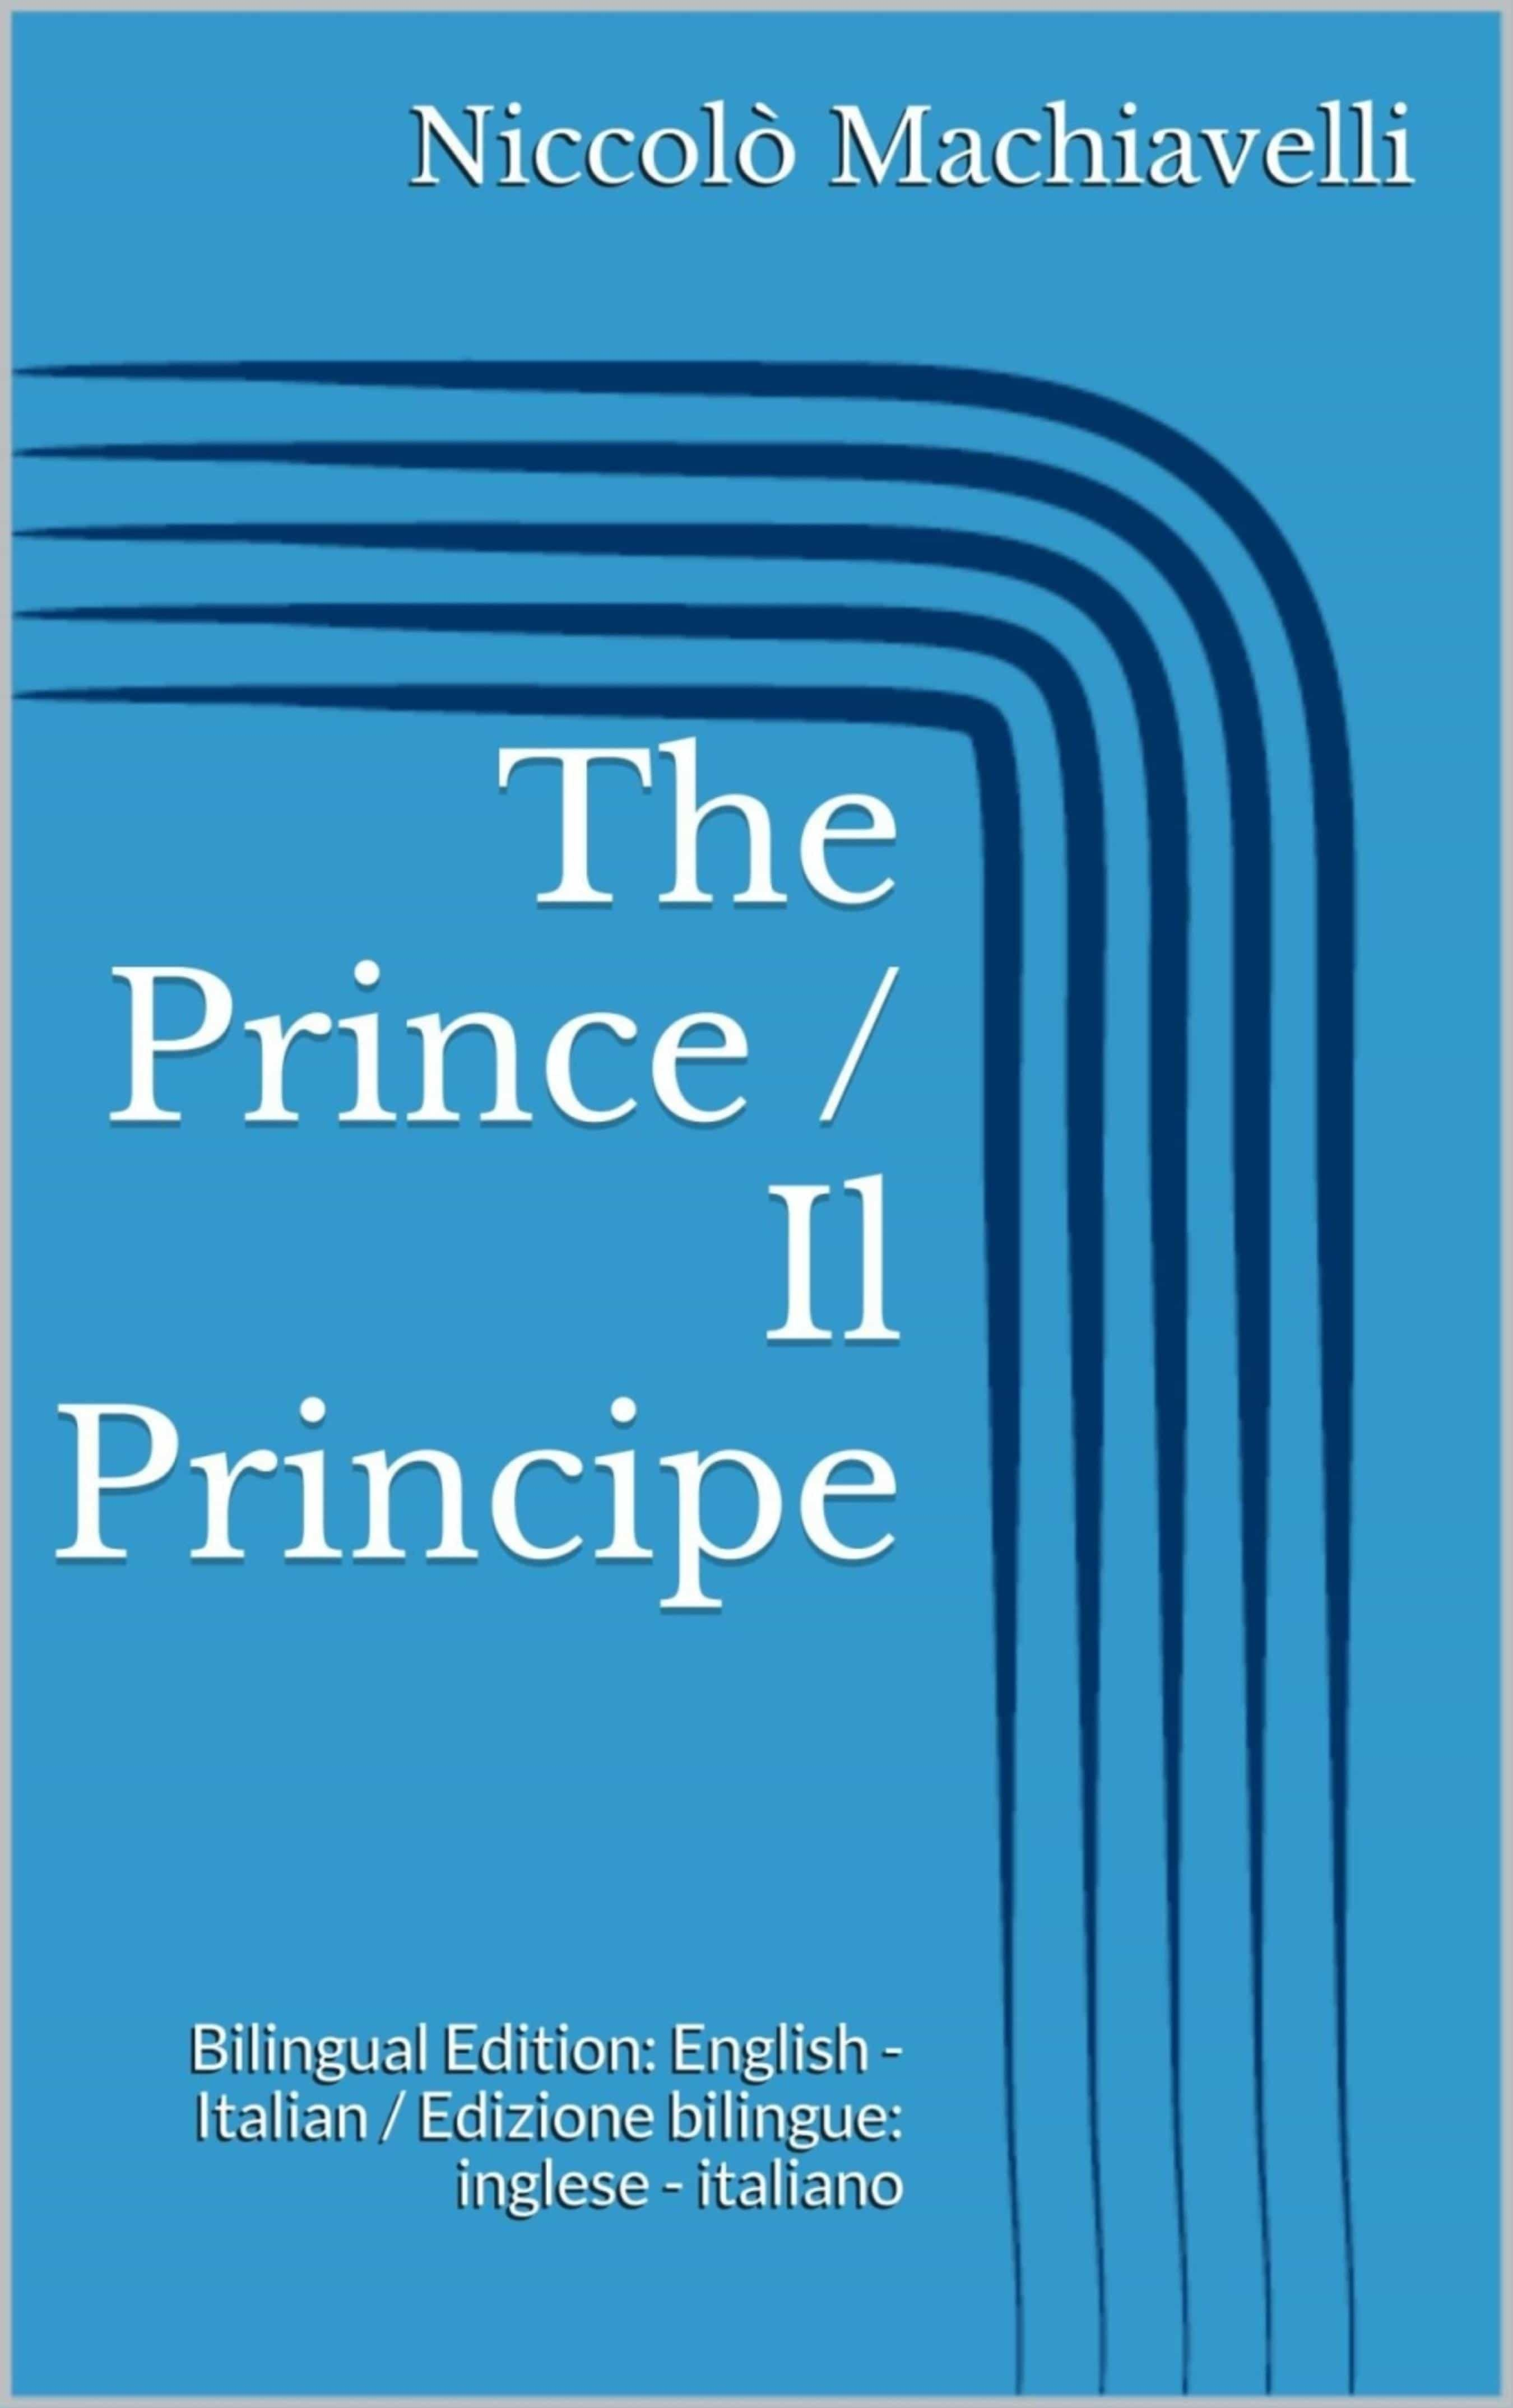 THE PRINCE / IL PRINCIPE